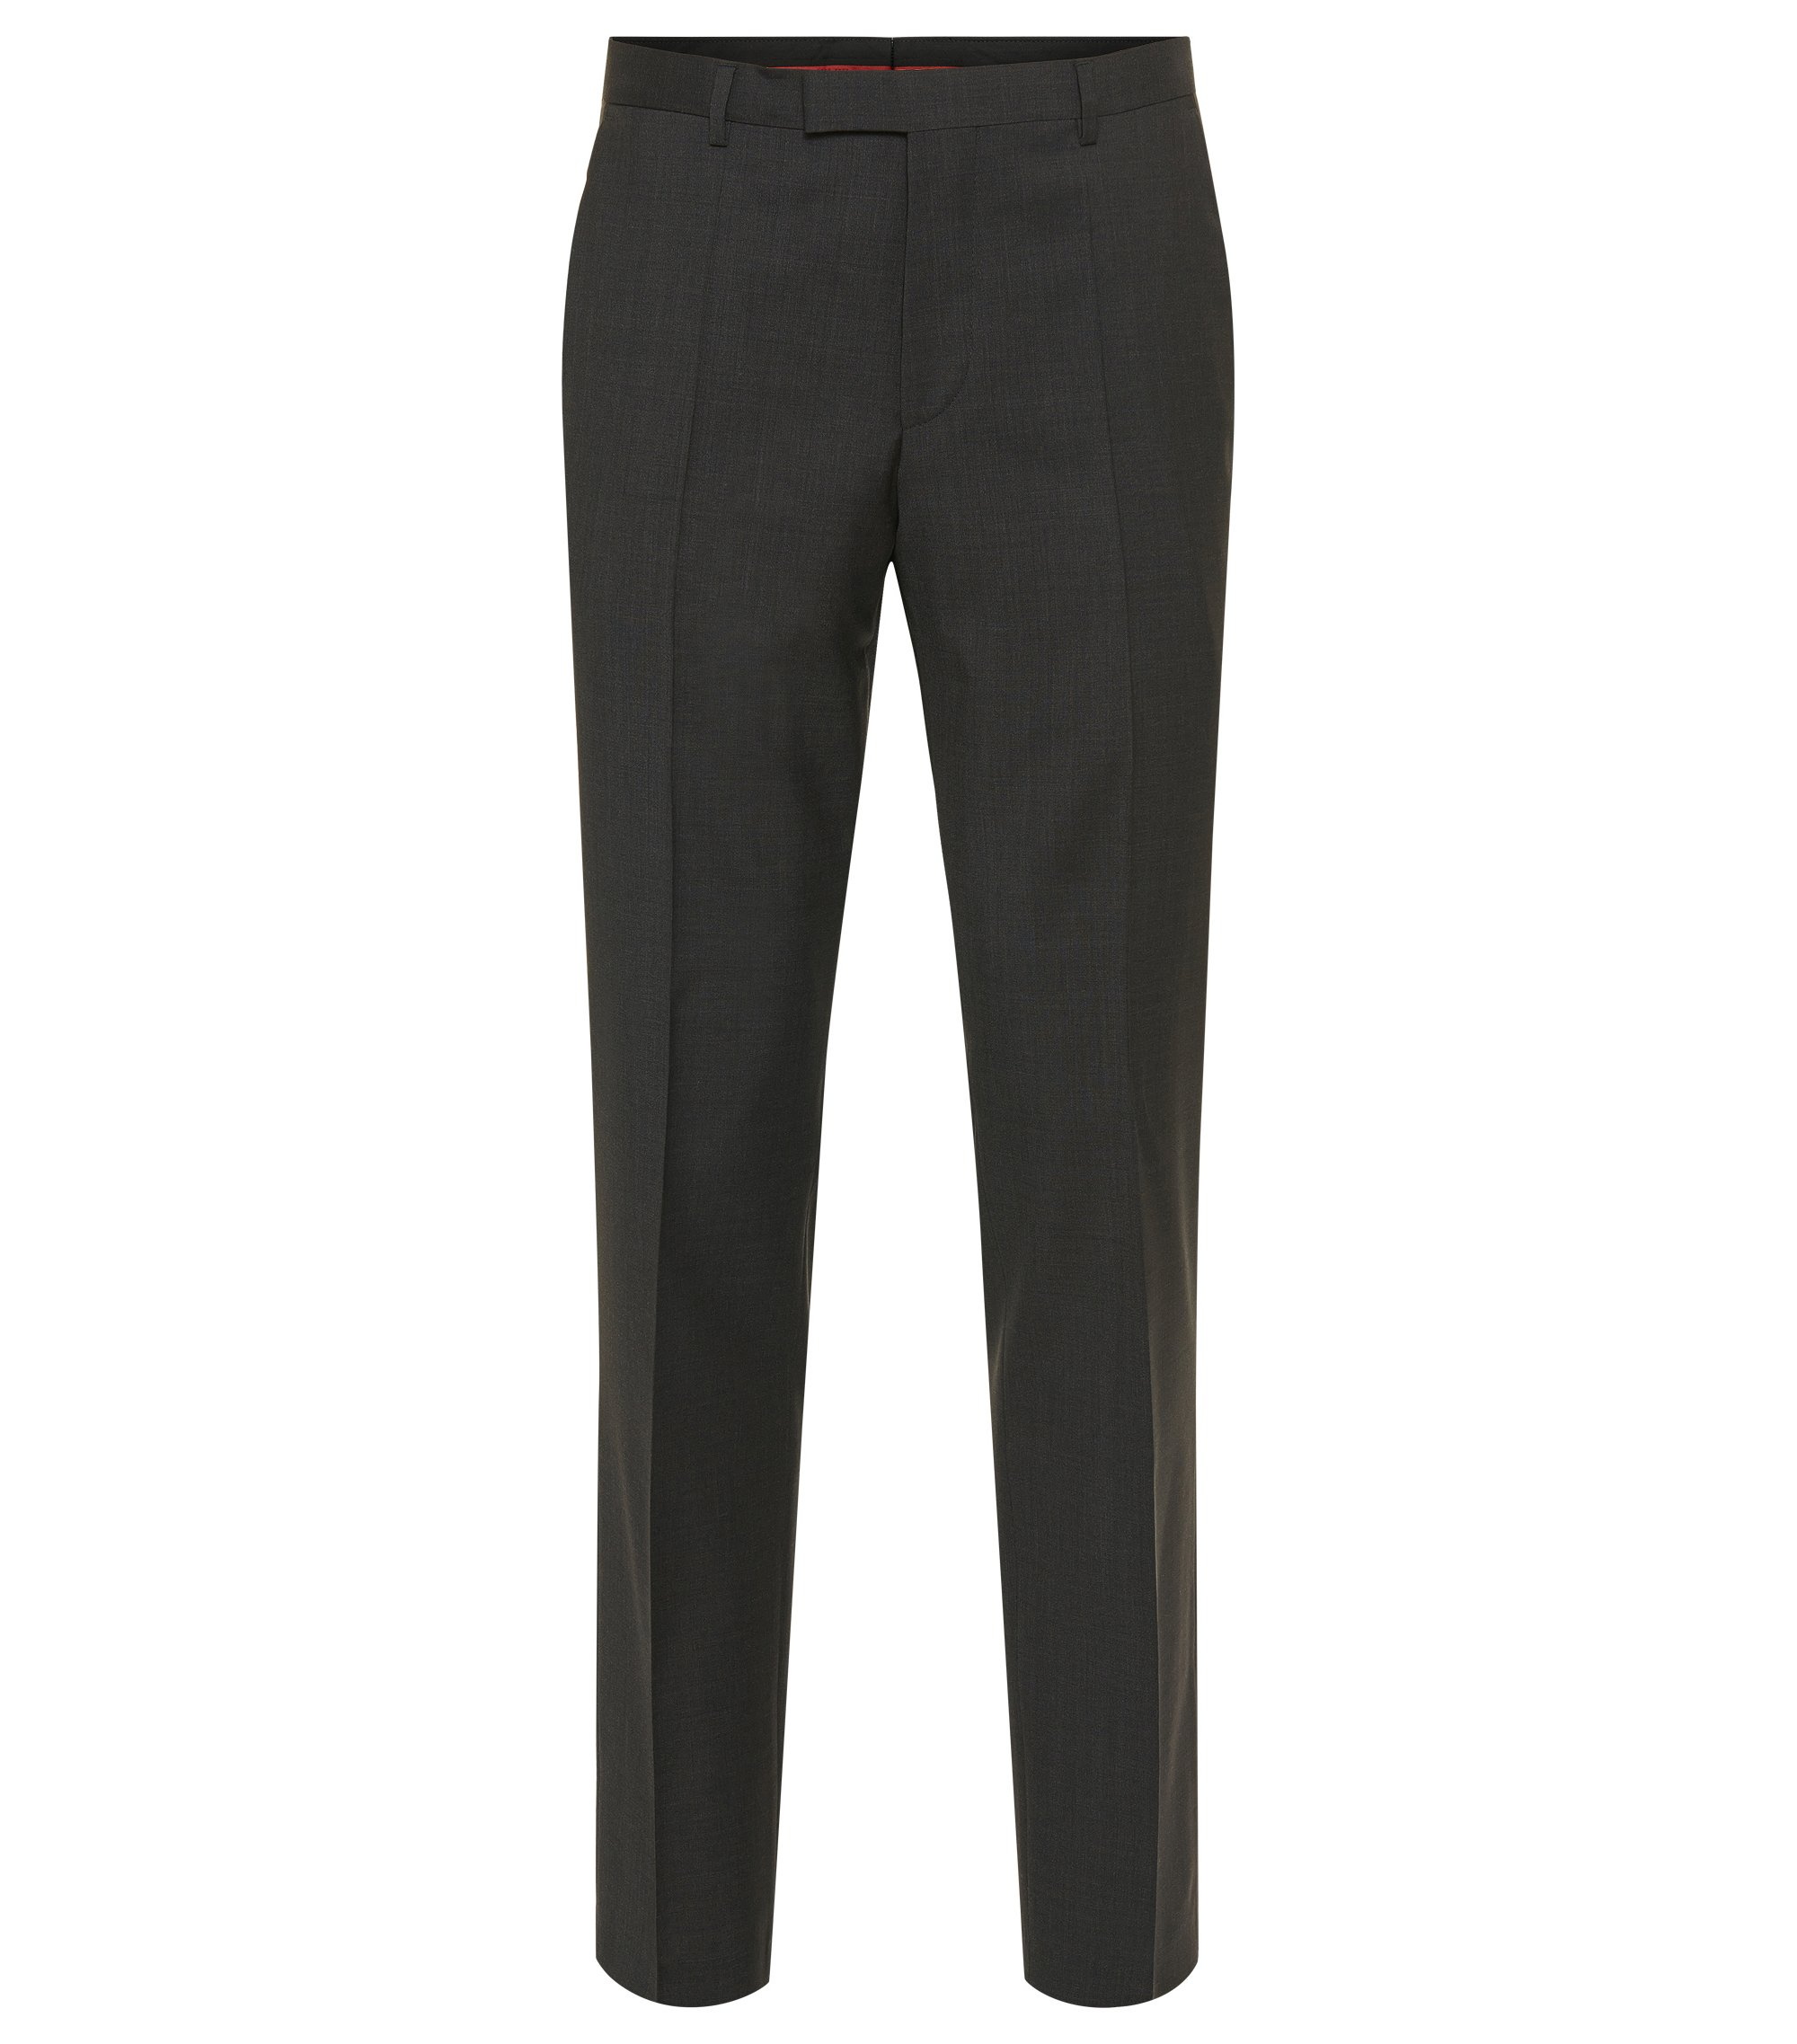 Pantalon Regular Fit en laine vierge, Gris sombre